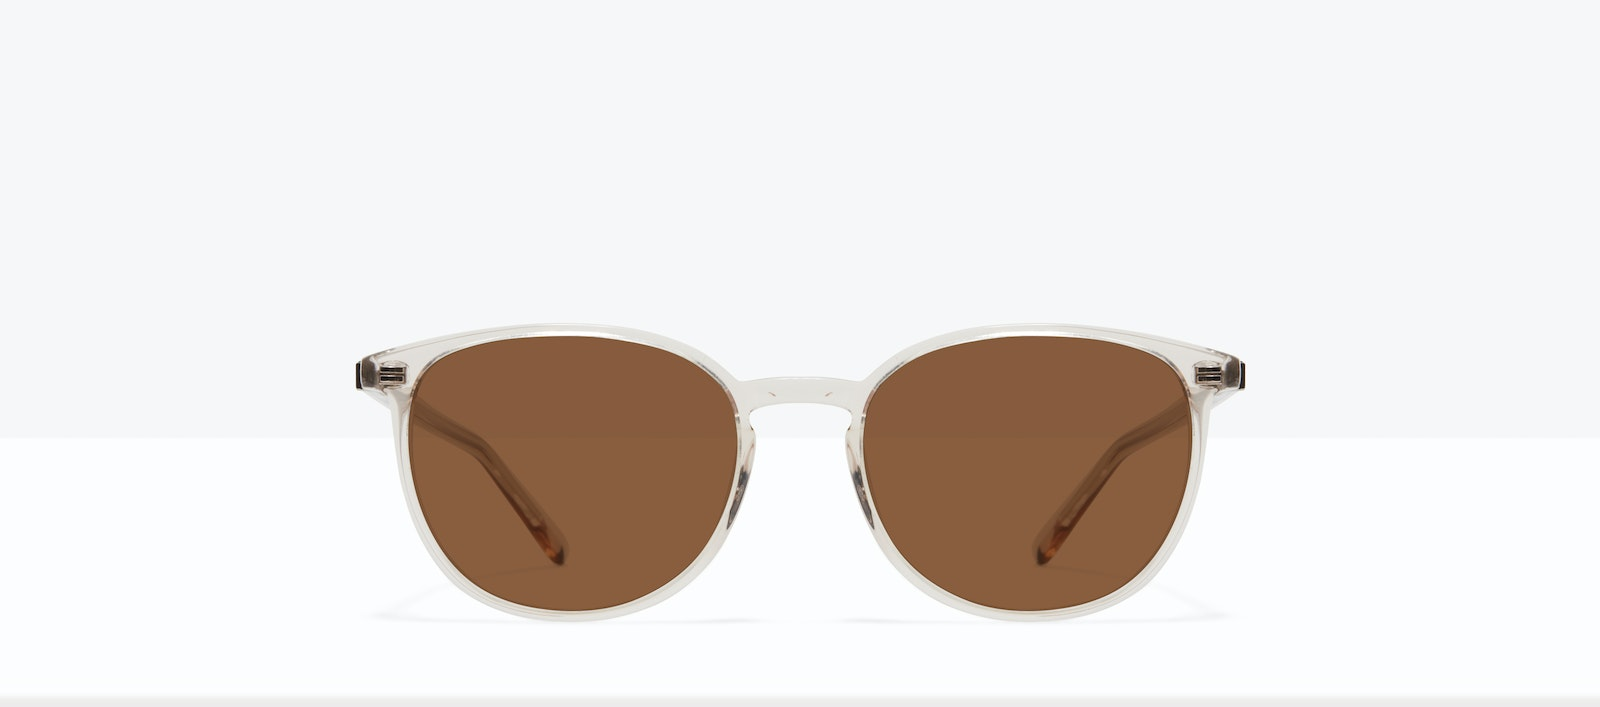 Affordable Fashion Glasses Round Sunglasses Women Femme Libre S Margo Front